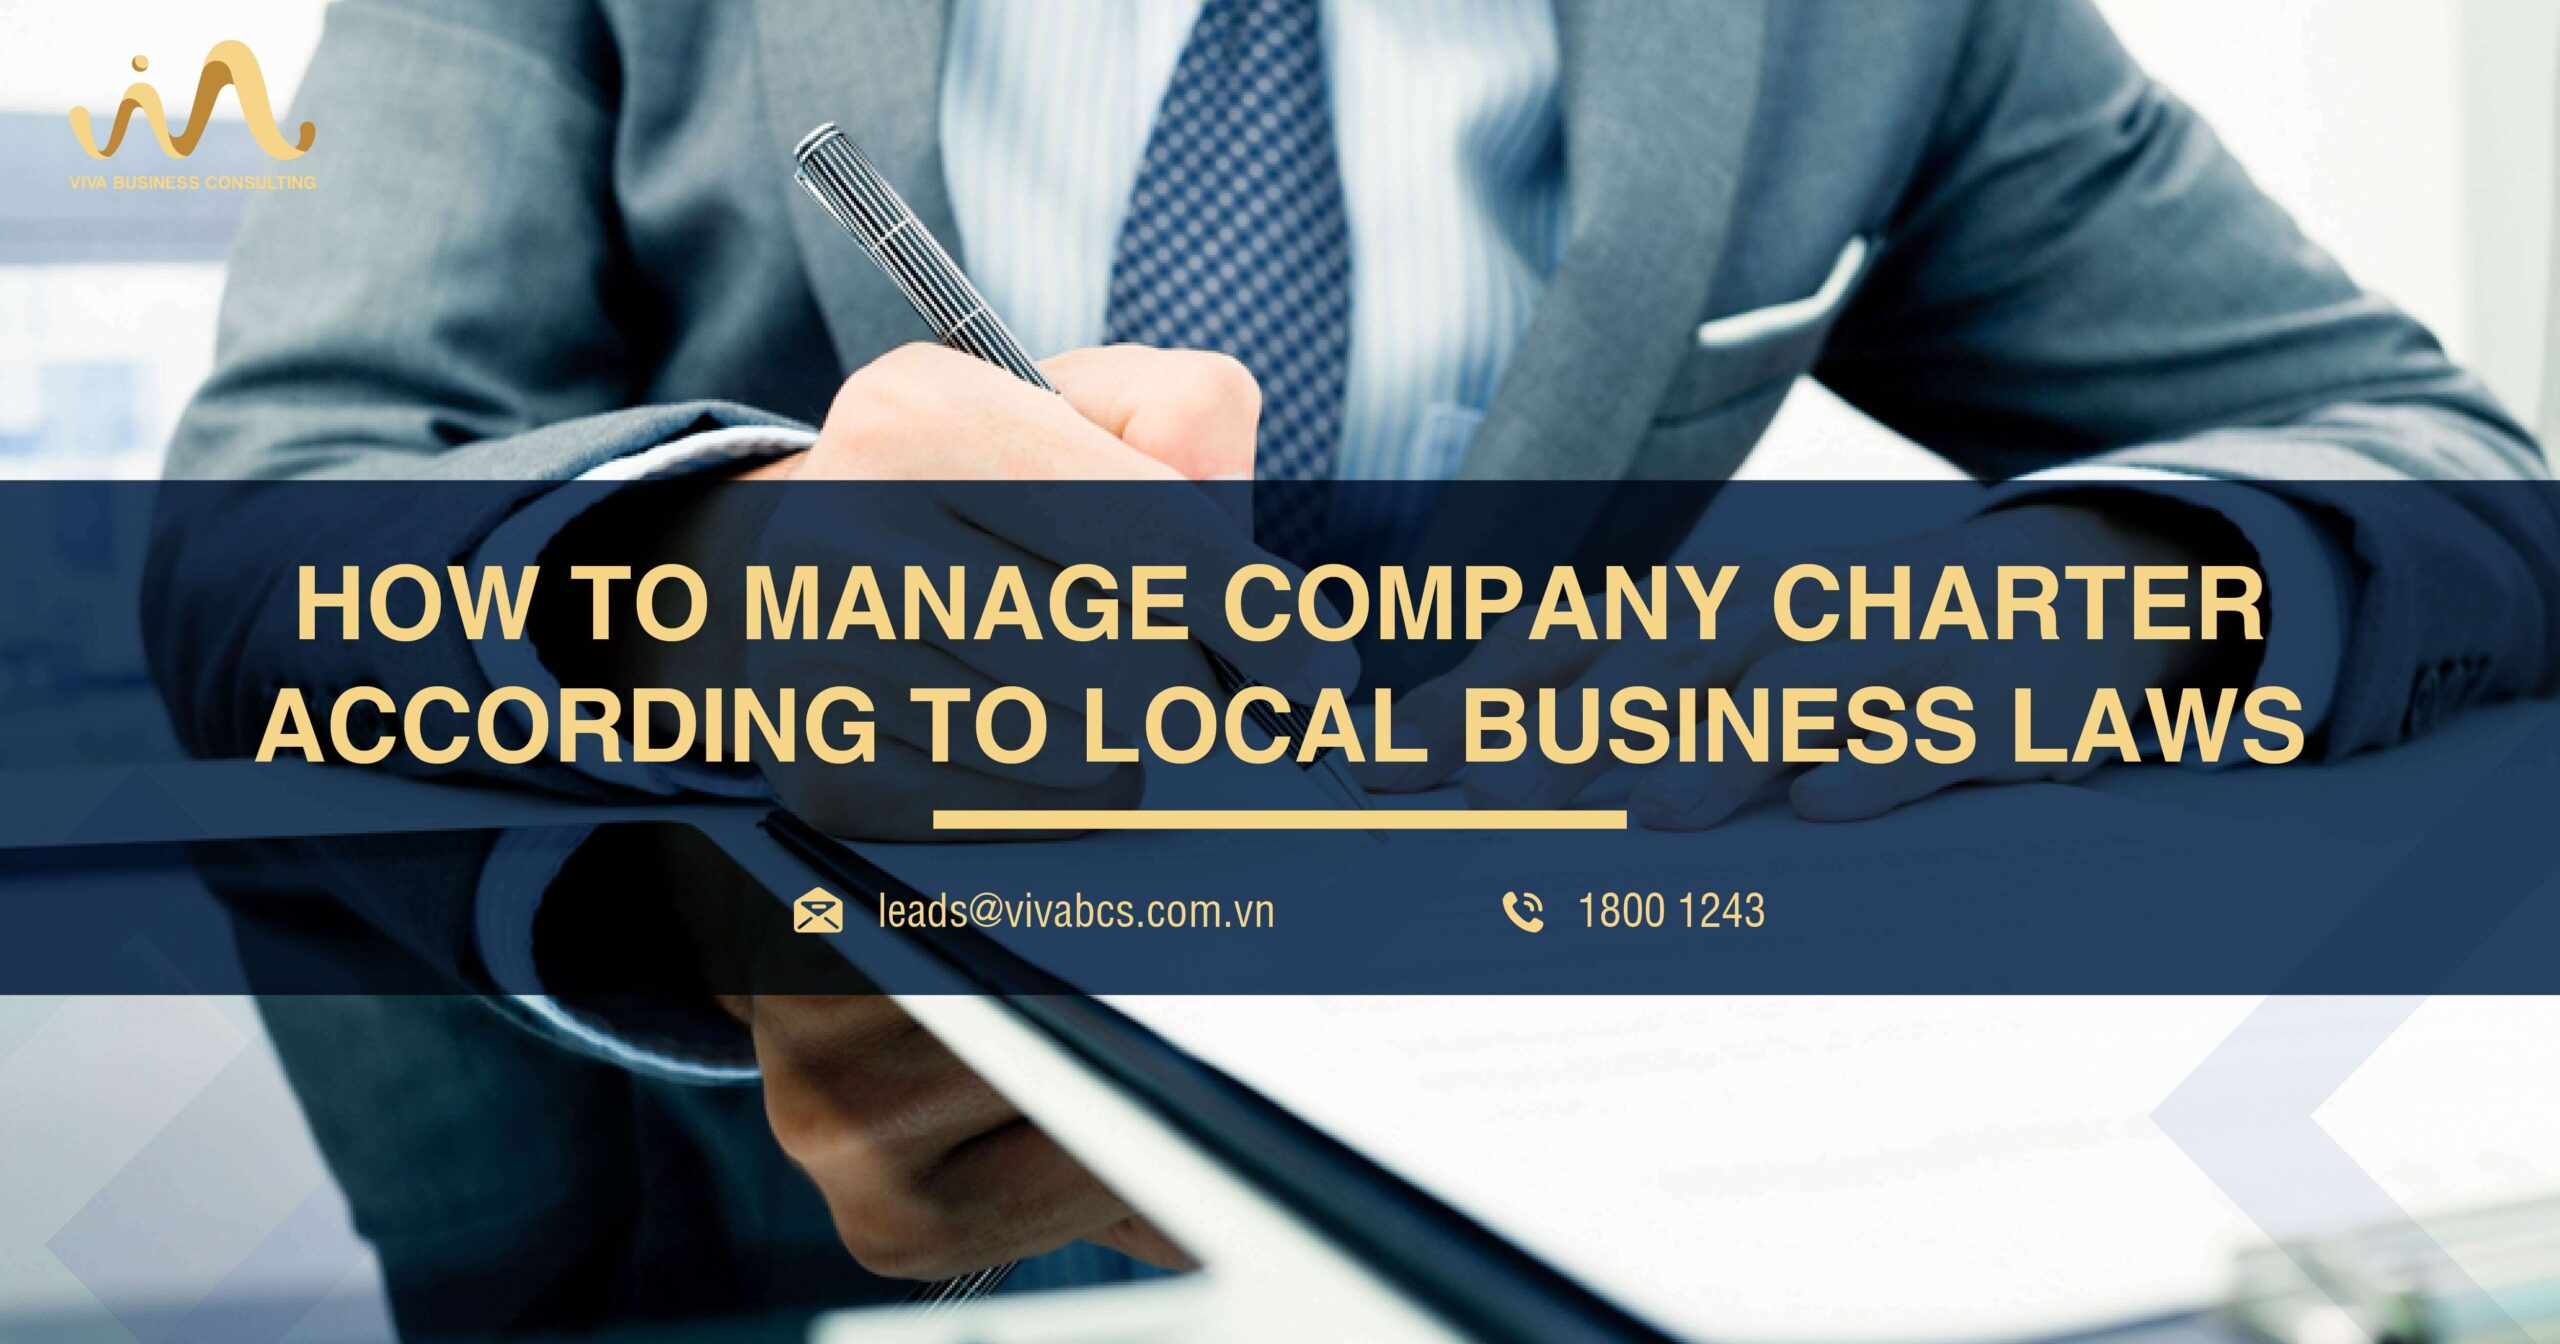 Doing Business In Vietnam: Company's Charter